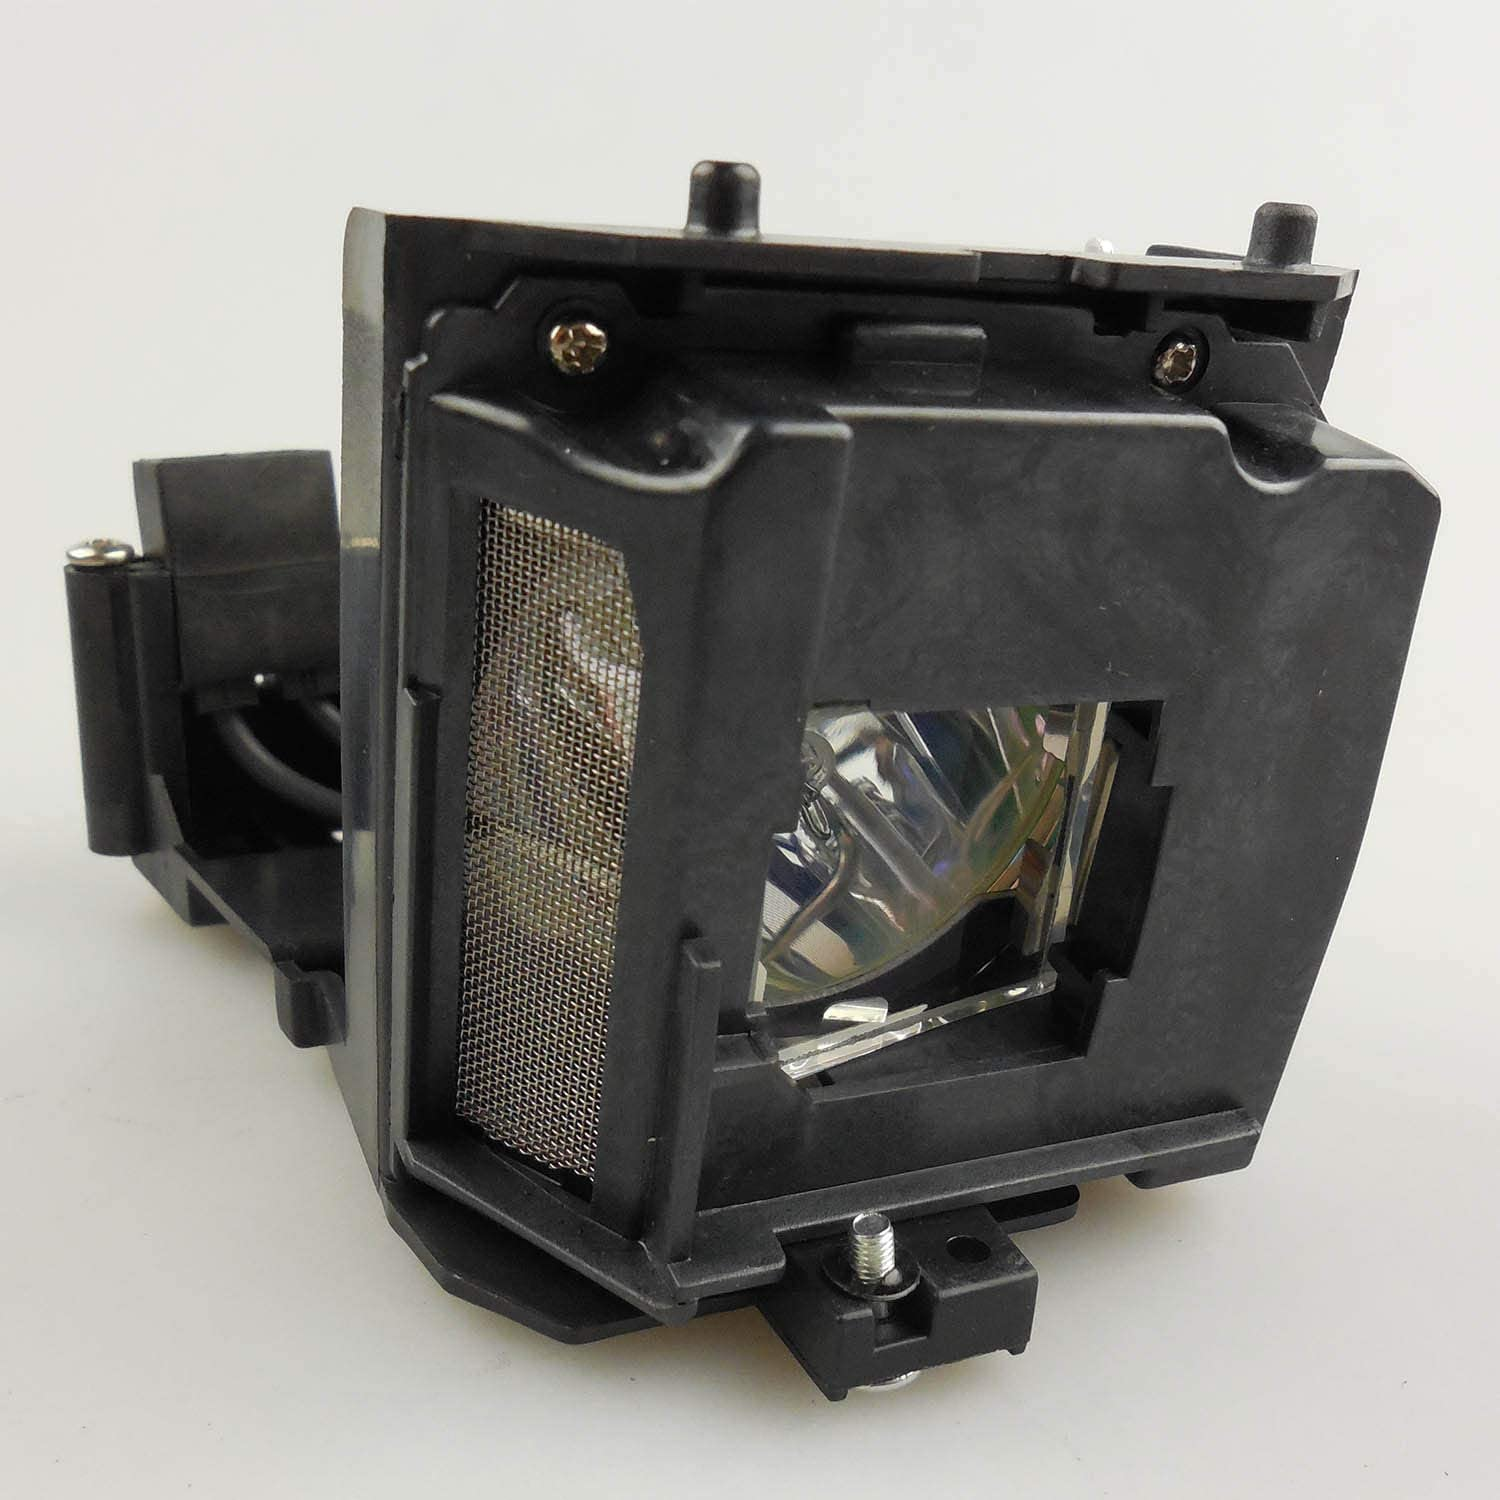 CTLAMP AN-F212LP Professional Replacement projector Lamp with Housing compatible with Sharp XR-32S PG-F212X PG-F312X PG-F262X XR-32X PG-F267X XR-32SL PG-F255W PG-F317X PG-F325W X32S XR-32XL XR-M830XA